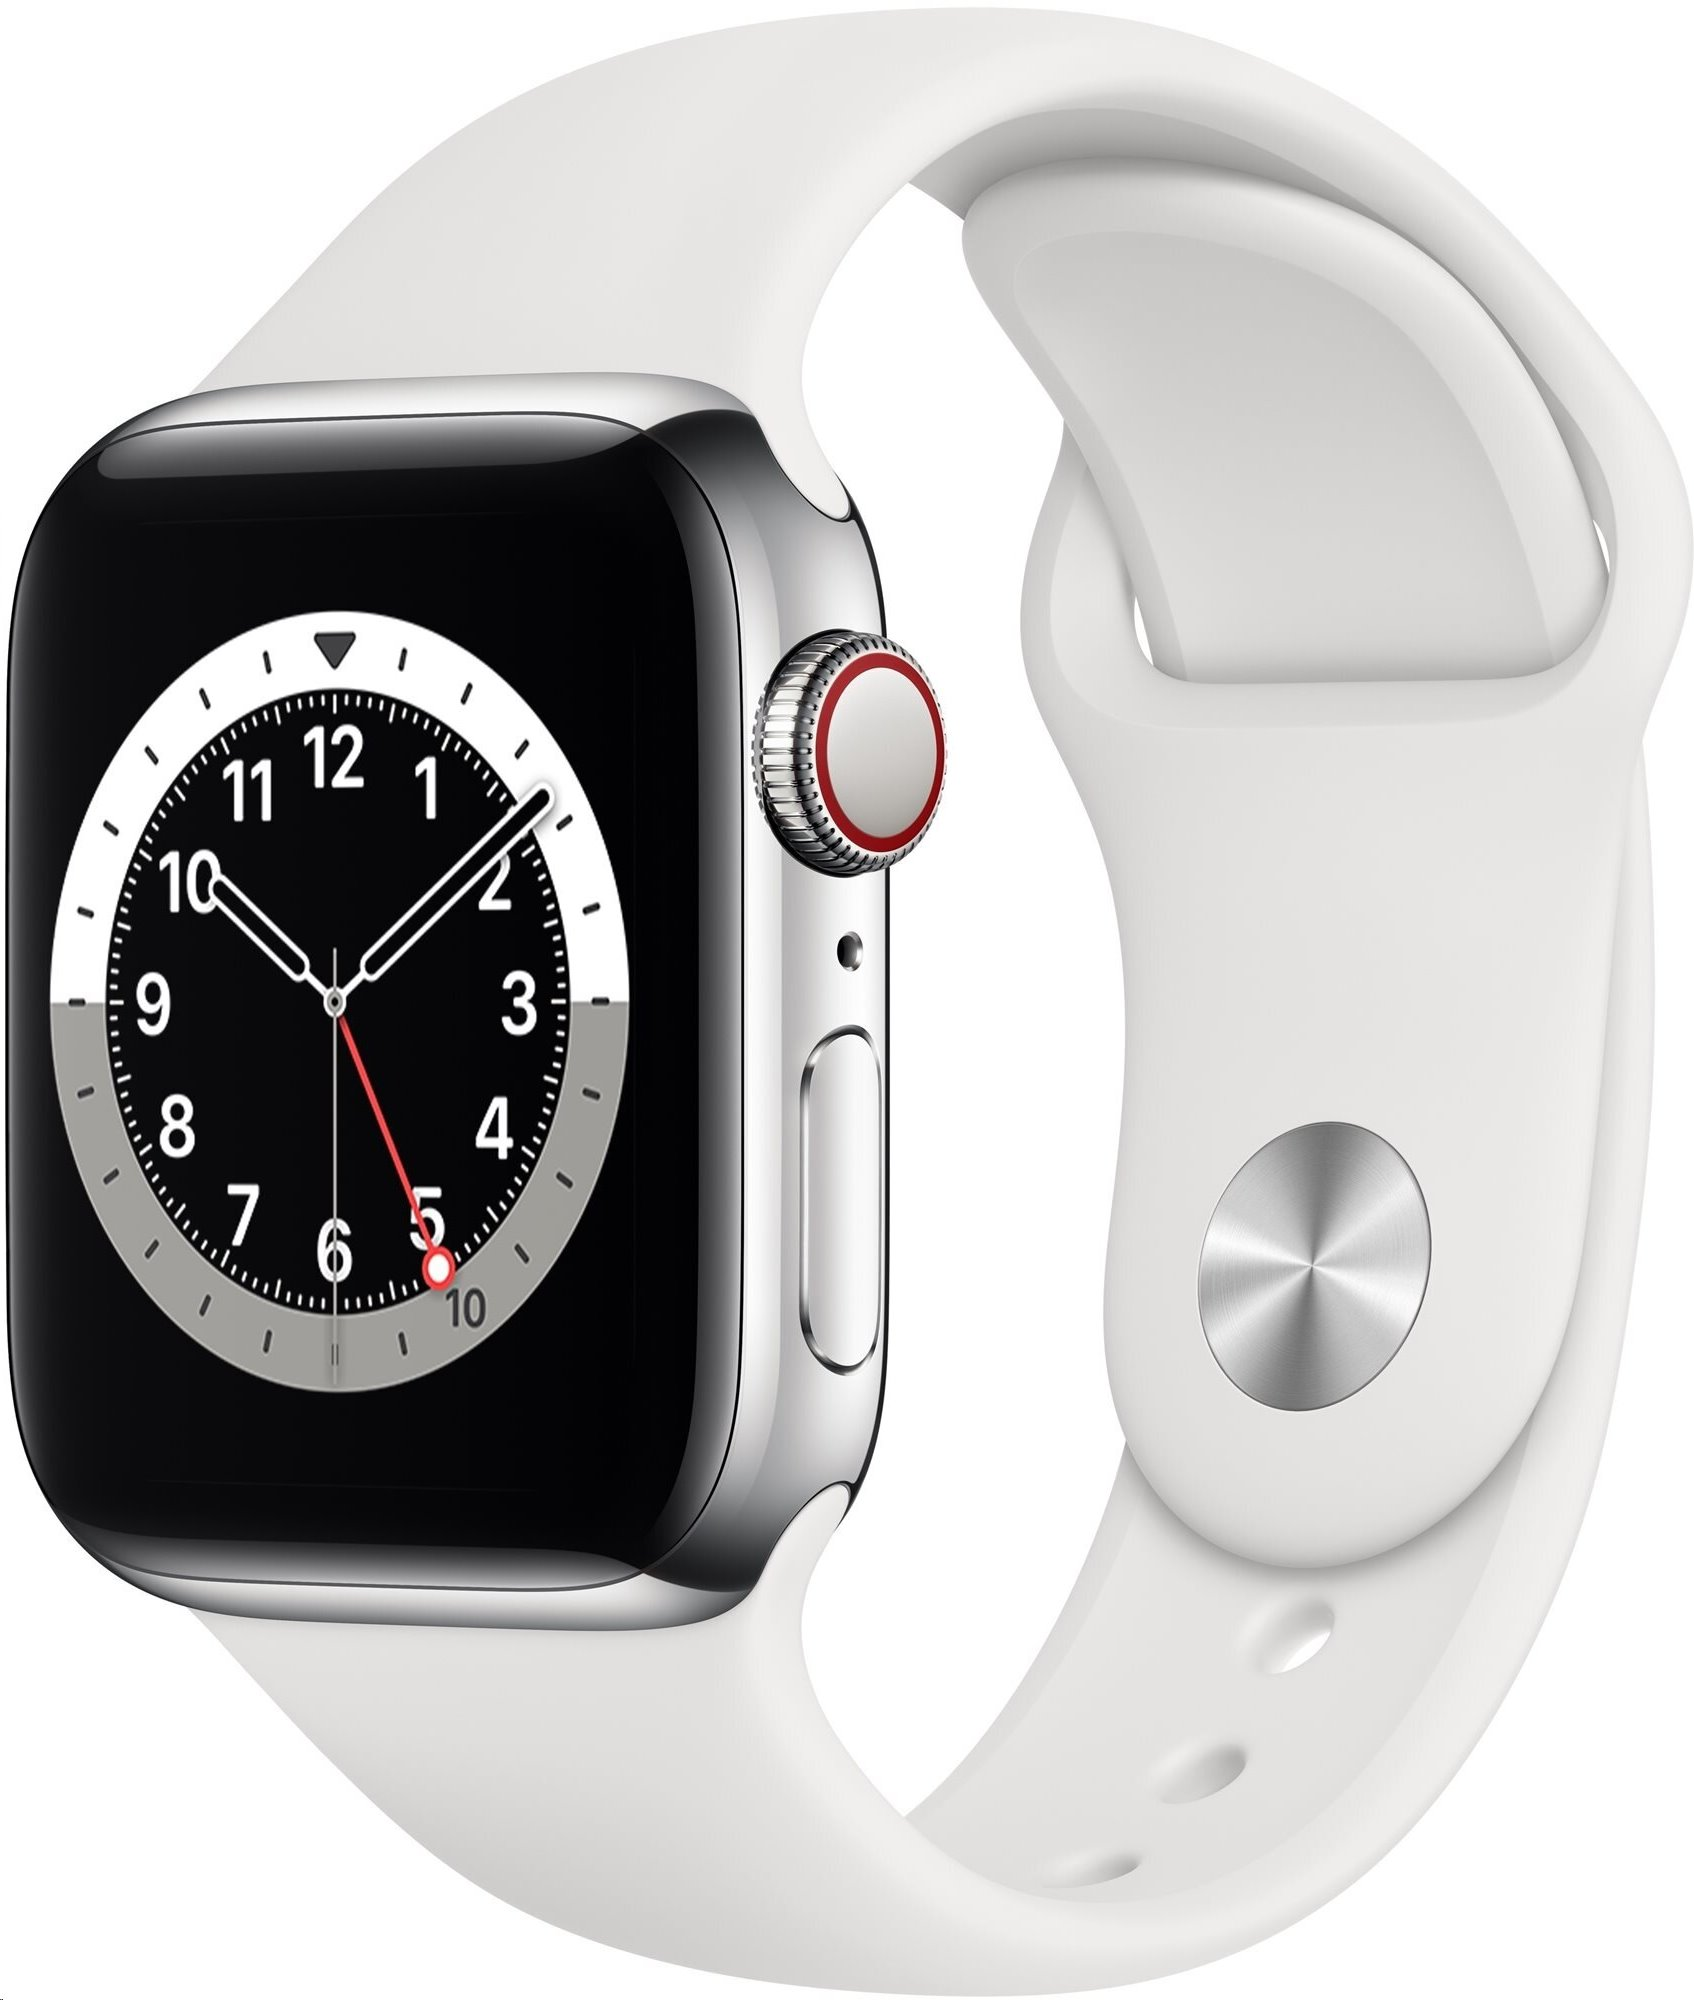 APPLE Watch Series 6 GPS+Cellular,40mm Silver Stainless Steel Case with White Sport Band